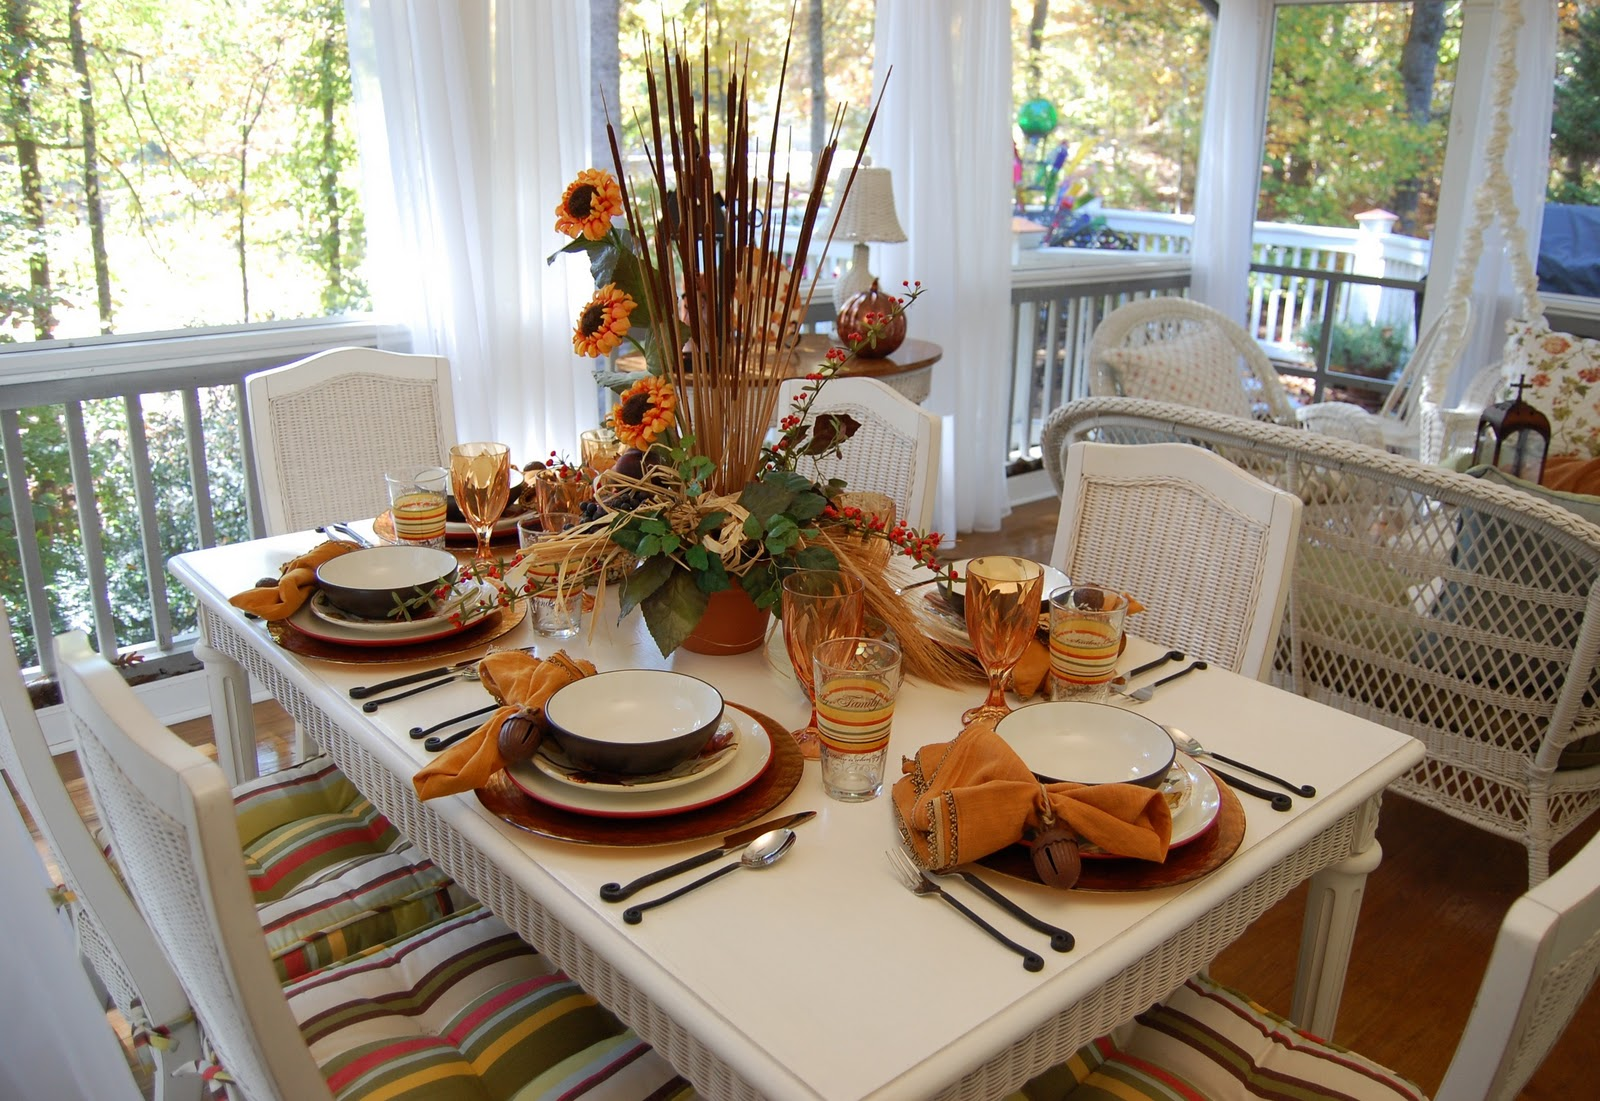 Autumn Table Setting Ideas 12 sprinkle sunflowers Fall Dining On The Porch Celebrating The Russet Shades Of Autumn